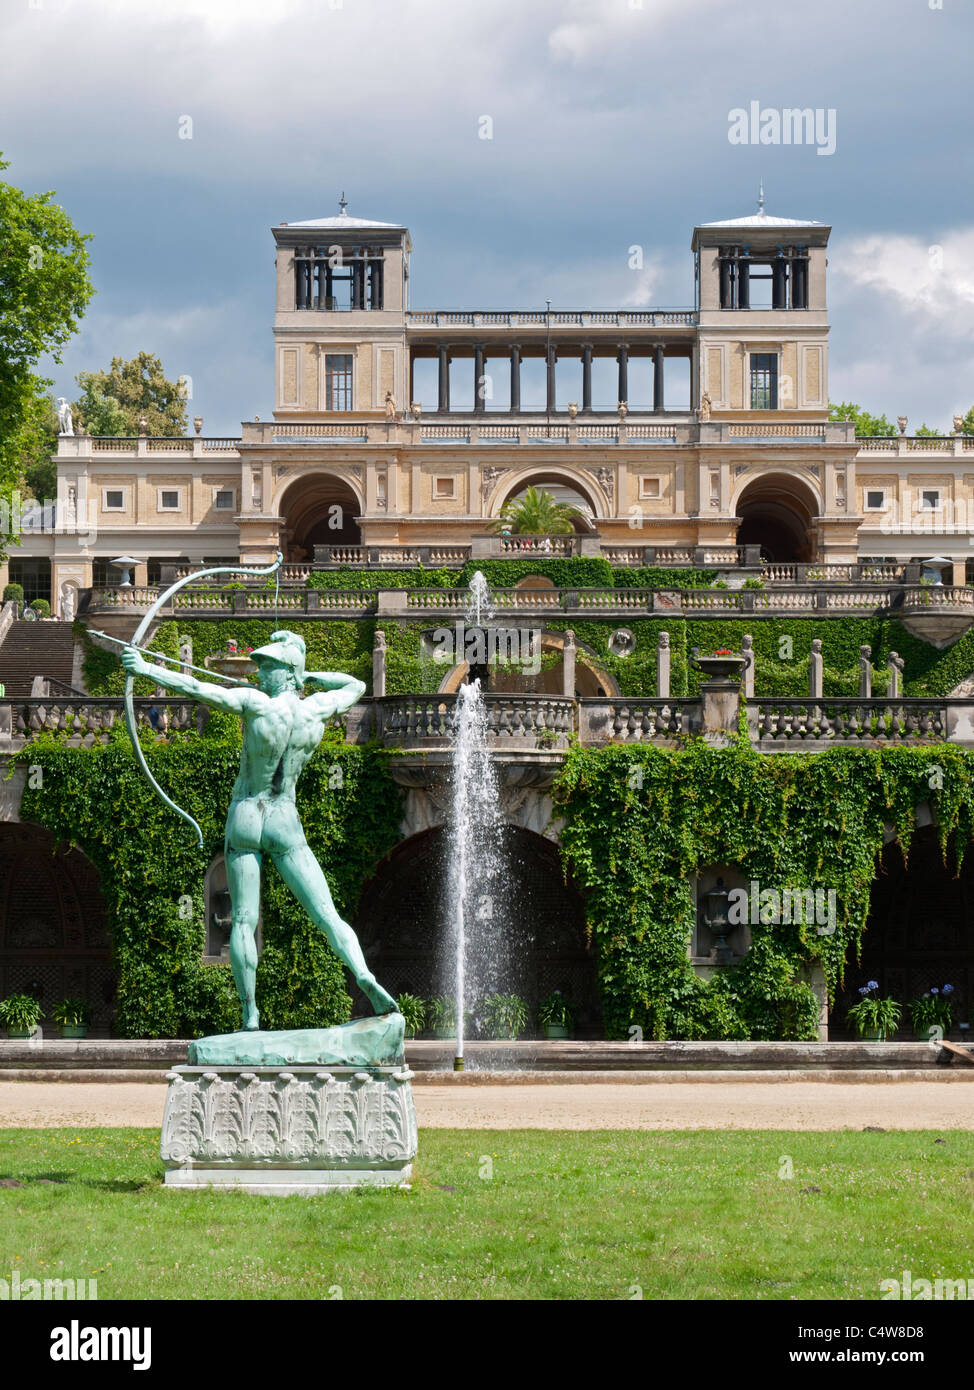 Gardens and sculpture  at SansSouci in Potsdam Germany Stock Photo